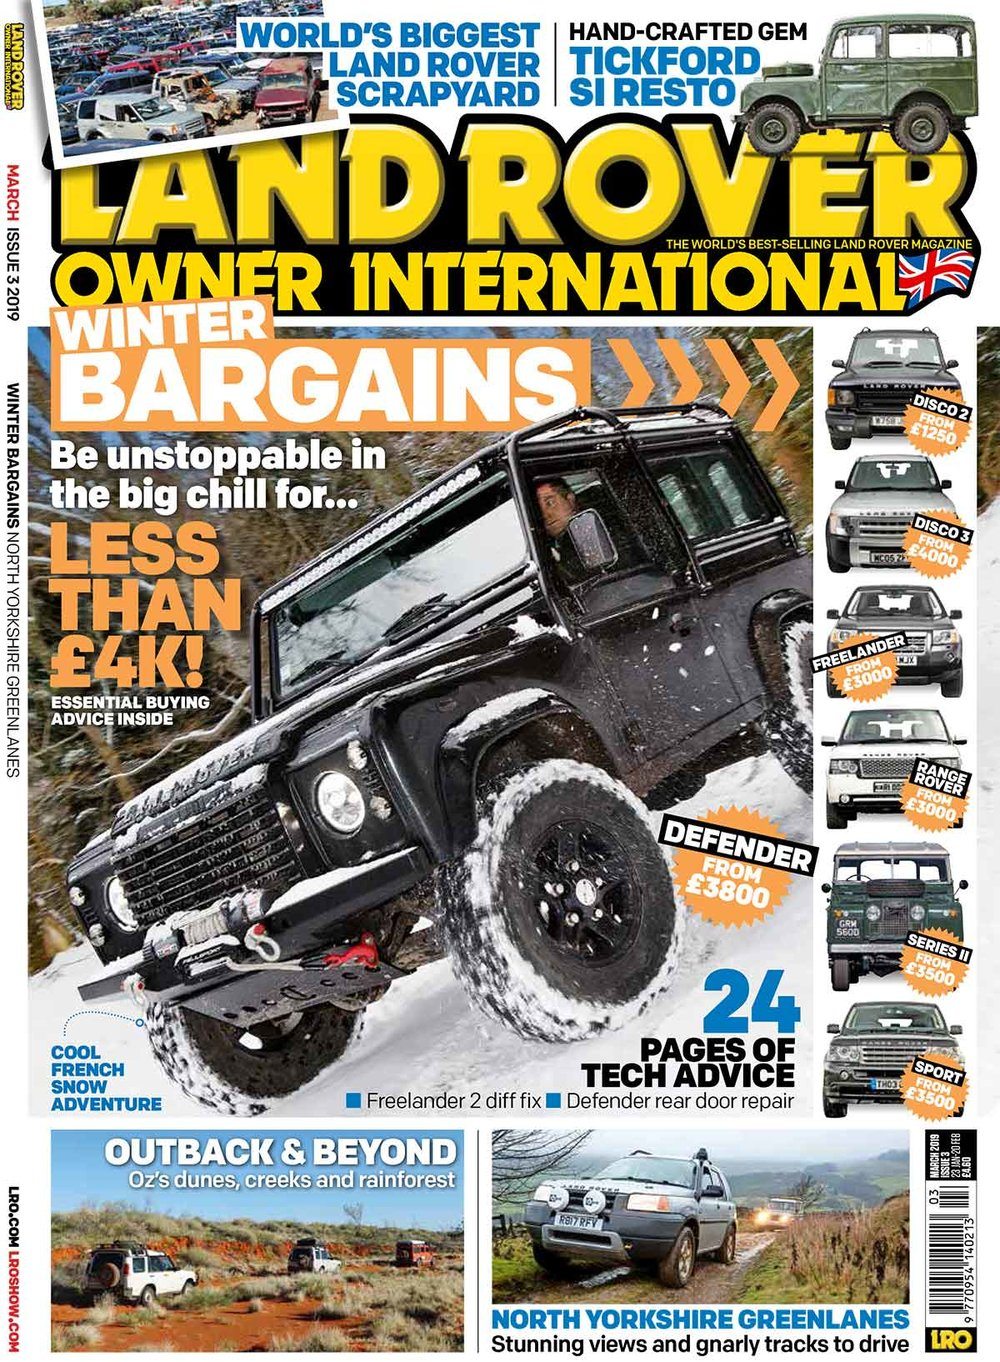 LRO-March-2019-cover.jpg